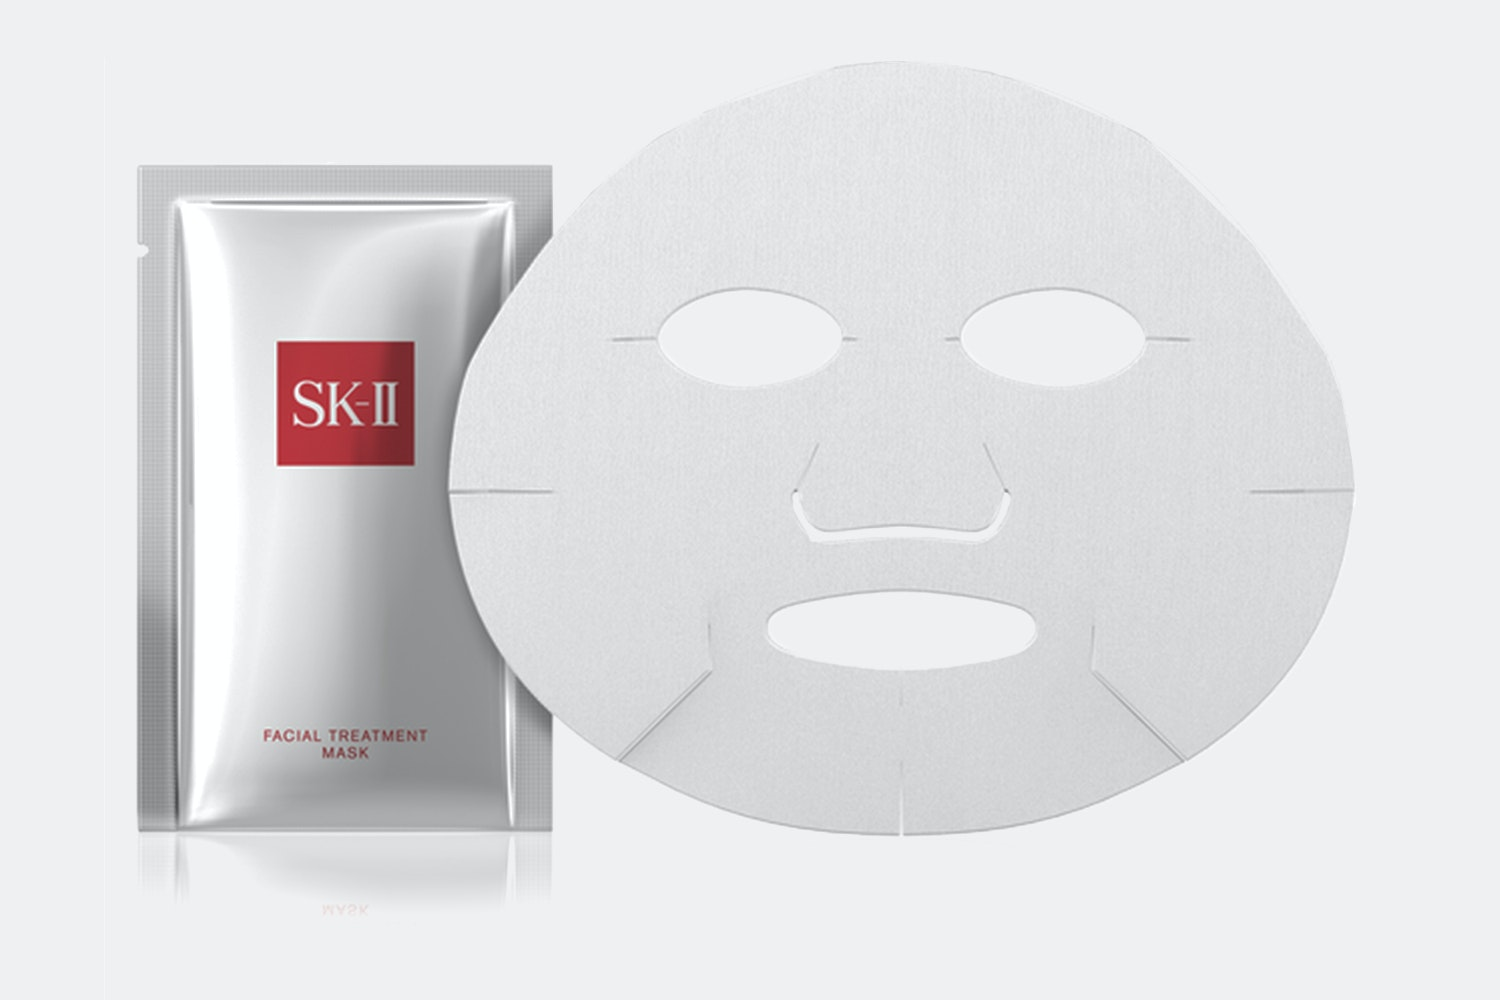 SK-II Facial Treatment Masks (6 Sheets)